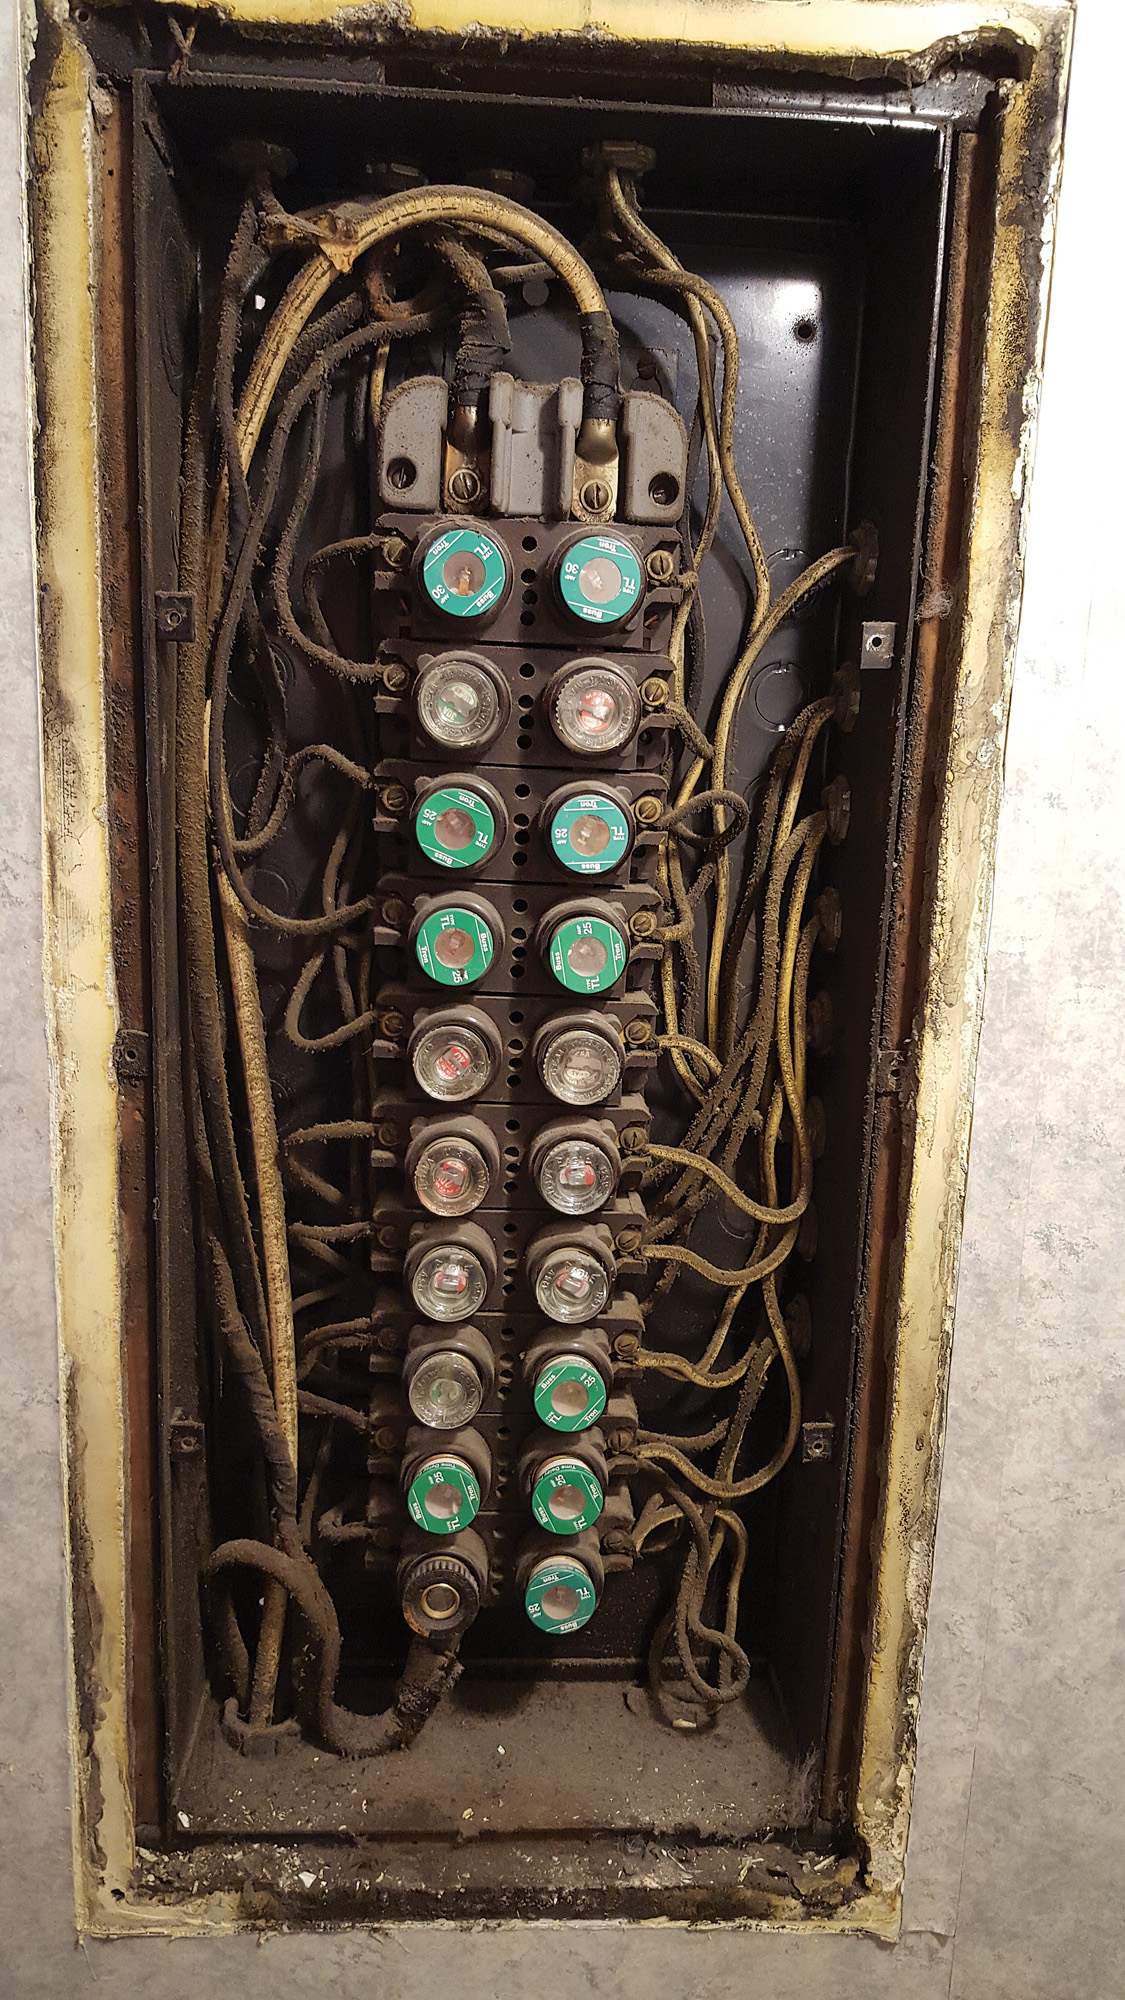 This old fuse box is loaded with obsolete wiring and it lacks adequate  insulation.